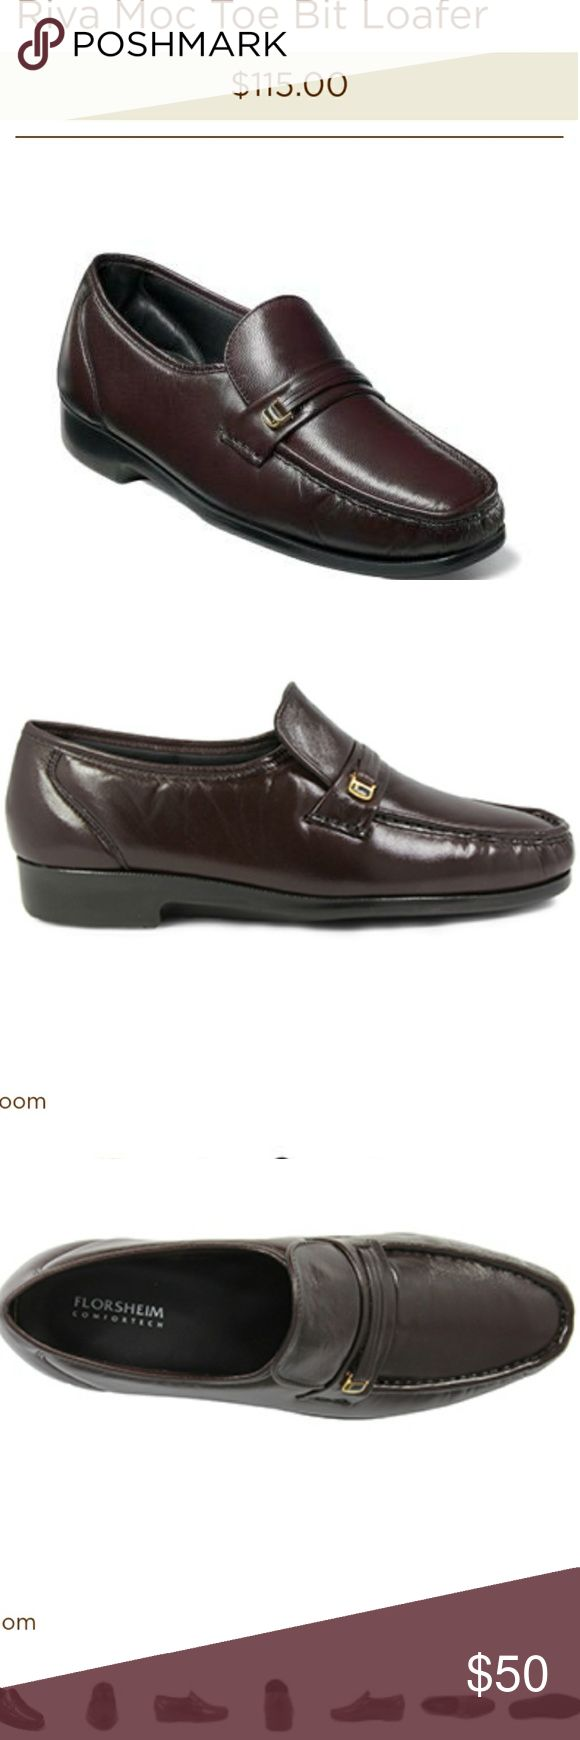 New Florsheim Riva Bit Loafer The Florsheim Riva Bit Loafer is a classic dress shoe that features a hidden gore made with genuine hand sewn construction for a comfortable, easy slip-on fit. Decorative strap & metal goldtone  accent. New - Never wore.  Features: genuine kidskin or nubuck leather uppers in Burgundy. The linings are breathable leather. The insole is a Comfortechnology footbed designed for long-term comfort and wearability.  Brand: Florsheim Size: 8.5 Florsheim Shoes